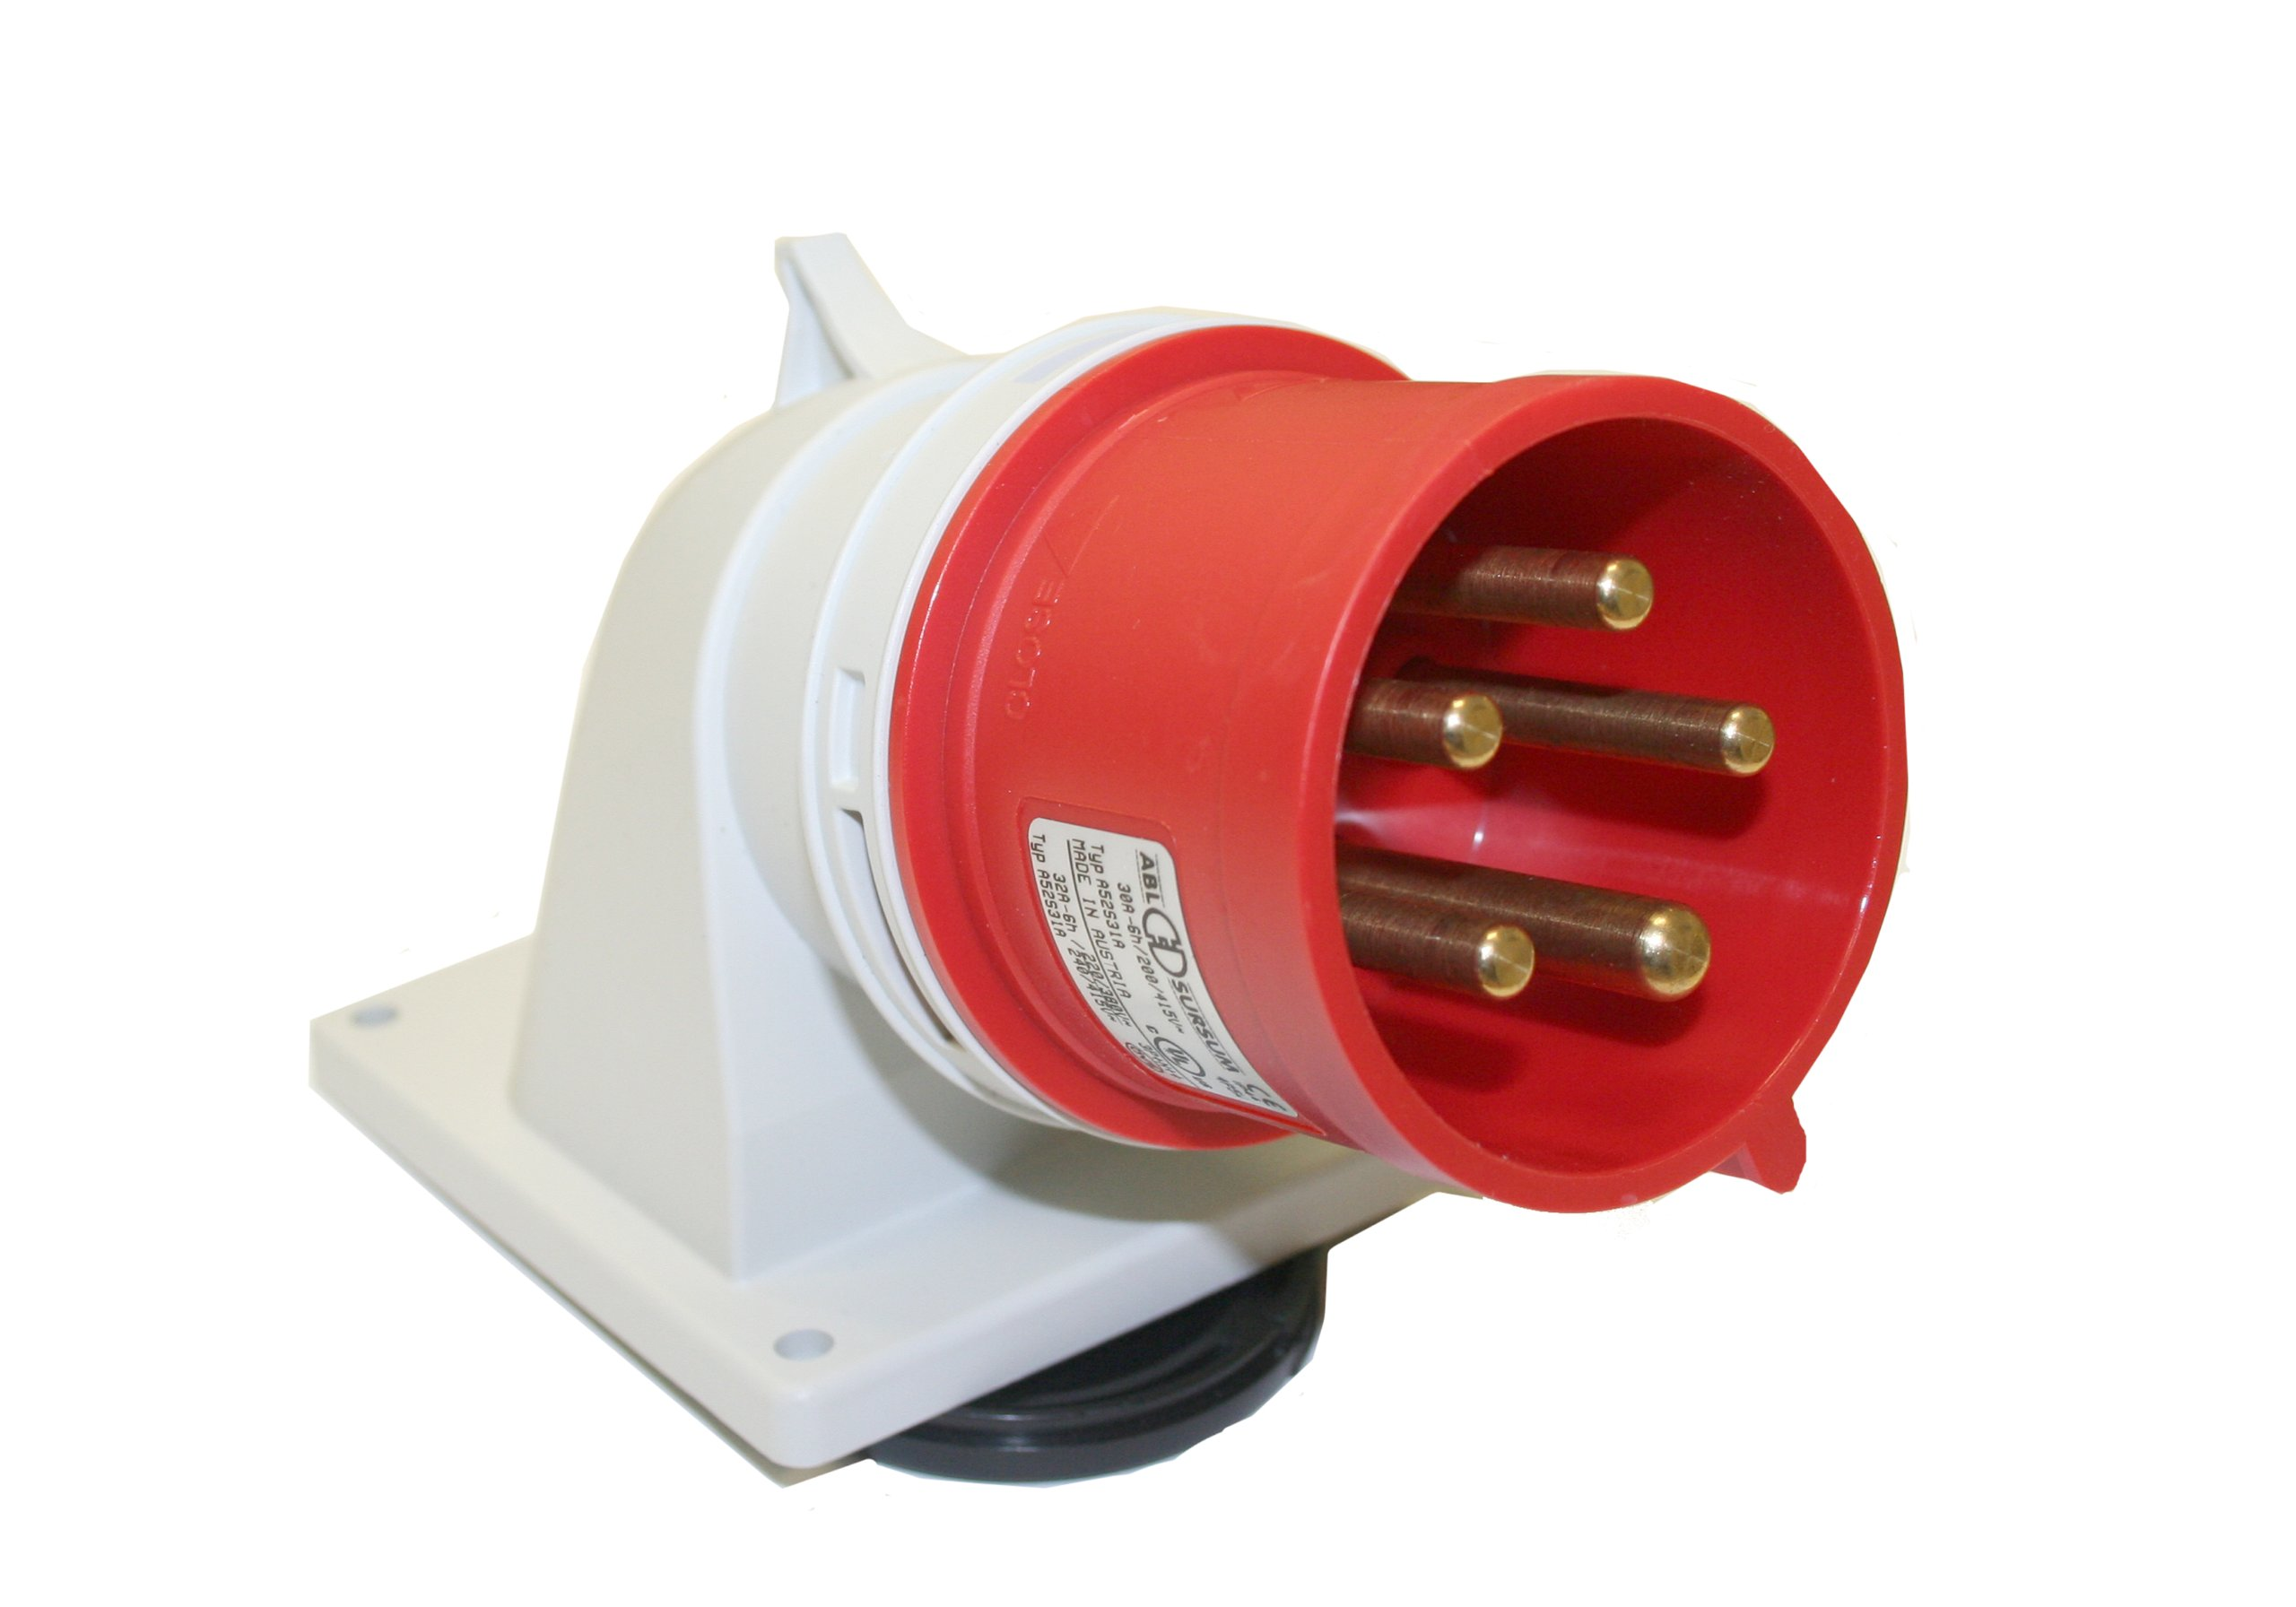 Interpower 84452313 IEC 60309 High Power Angled Inlet, Four Pole, Five Wire, 32A/30A Rating, 200/415VAC Voltage, Red 6 Hour Designation